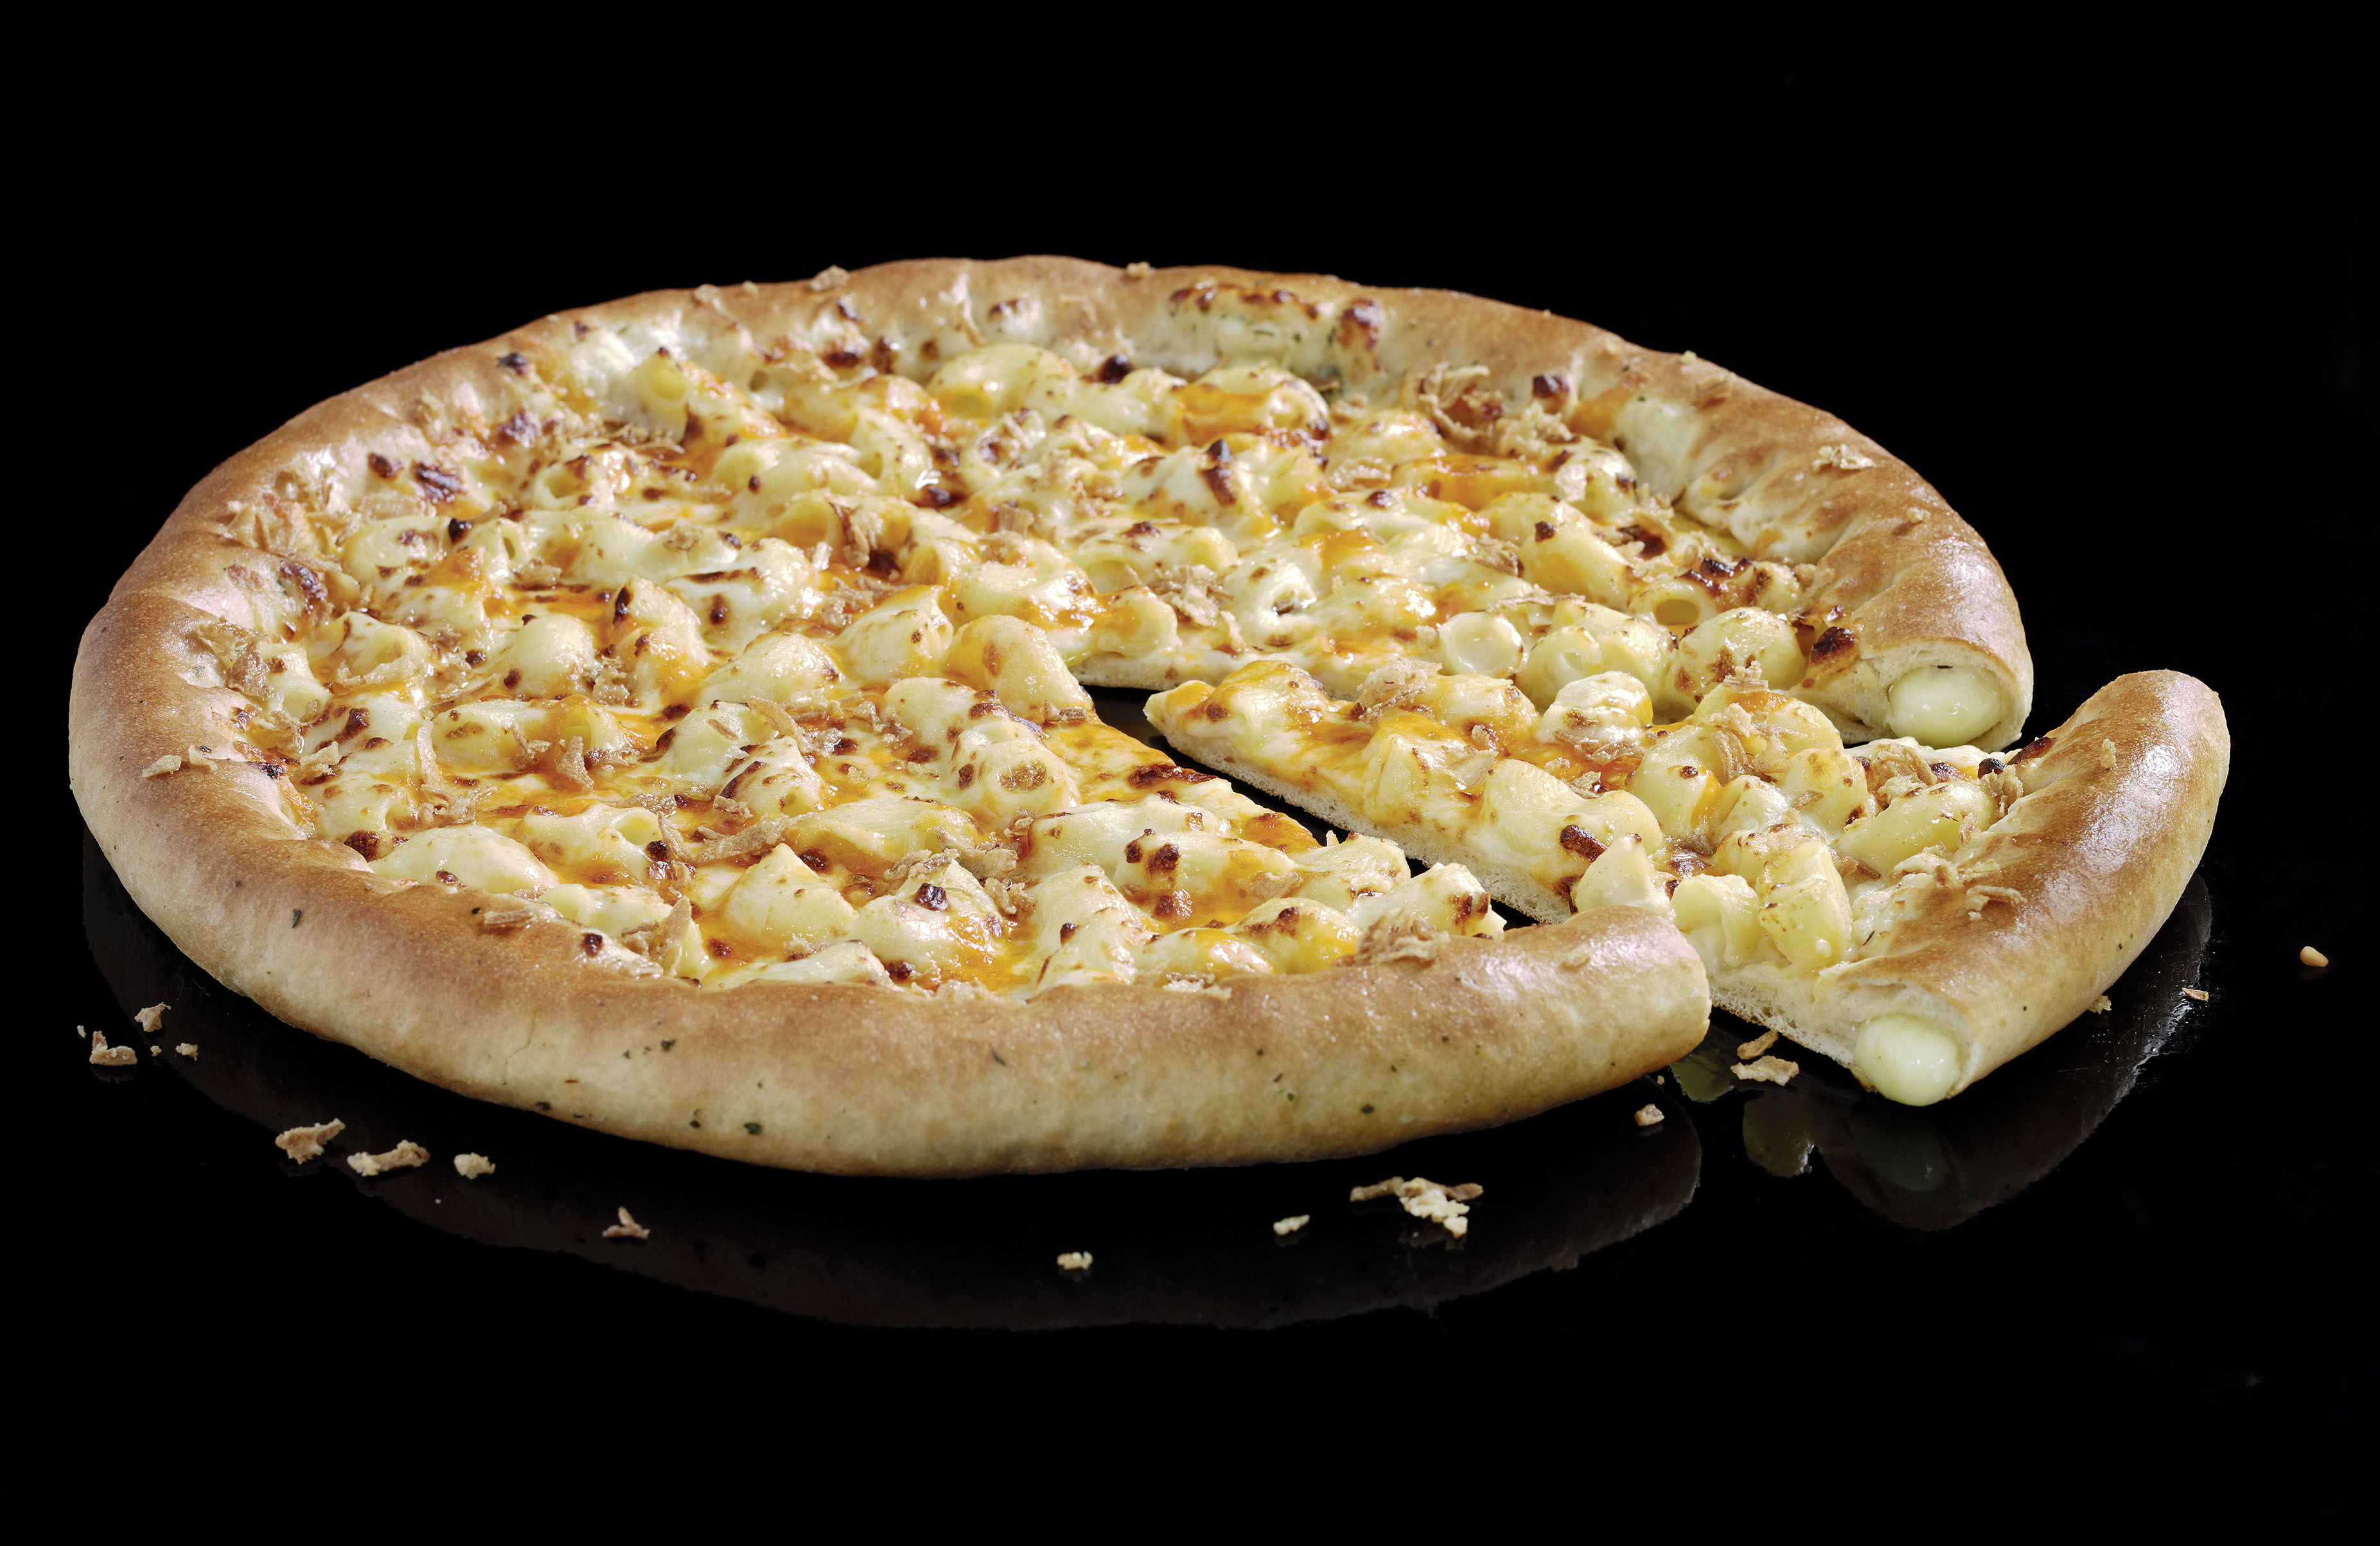 Mac 'n' cheese pizza is finally a reality